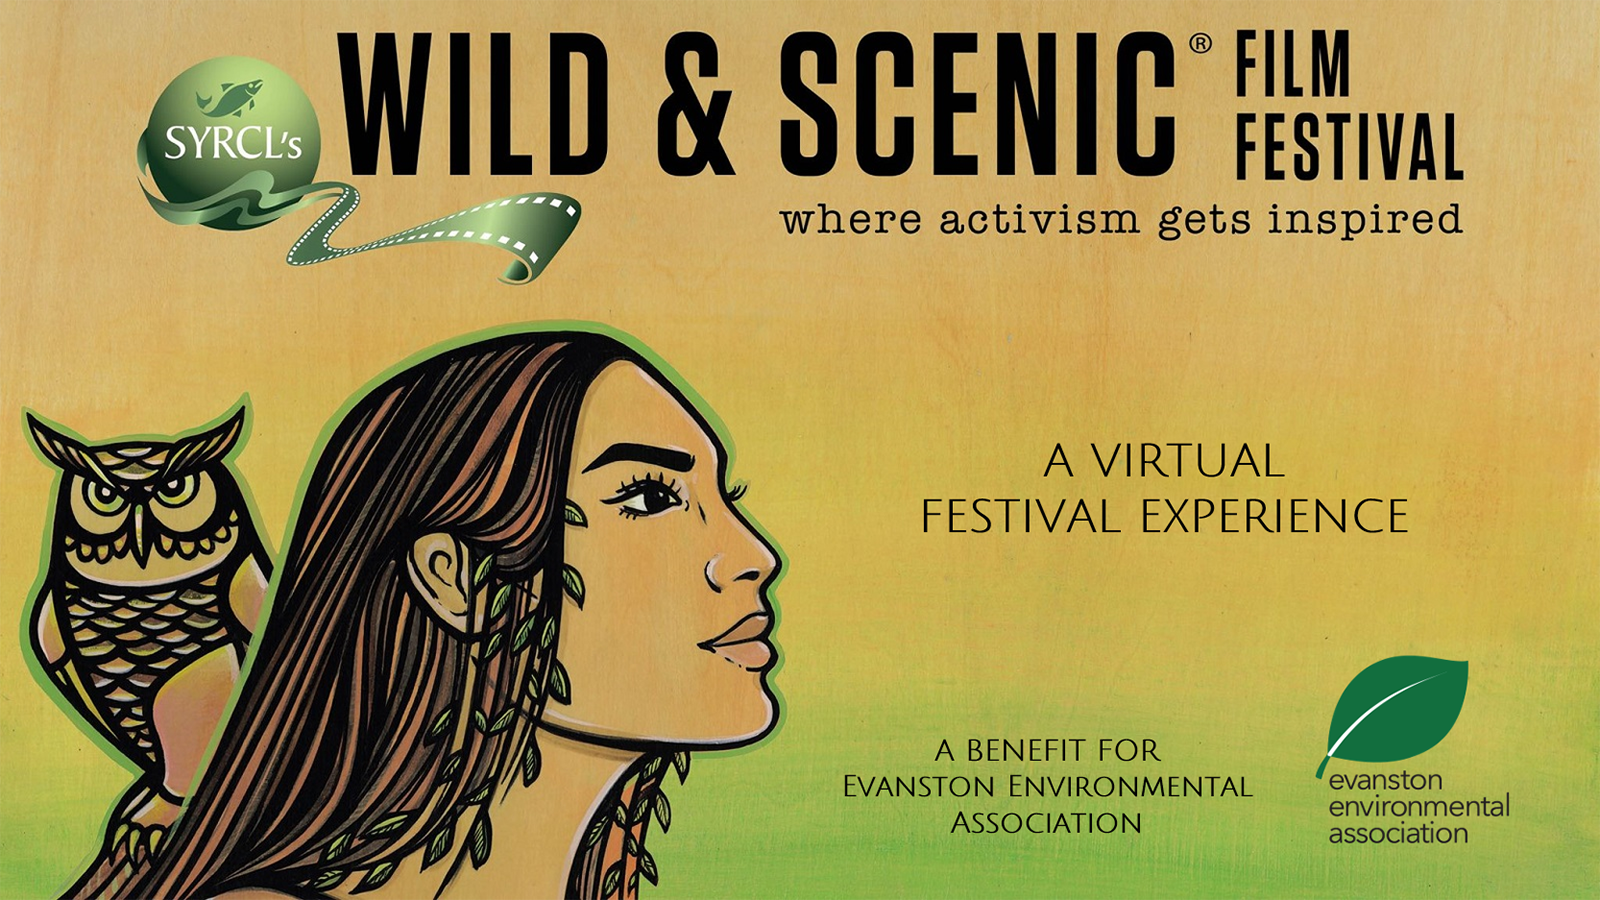 Evanston Environmental Association Presents SYRCL's Wild & Scenic Film Festival On Tour (Week 1)